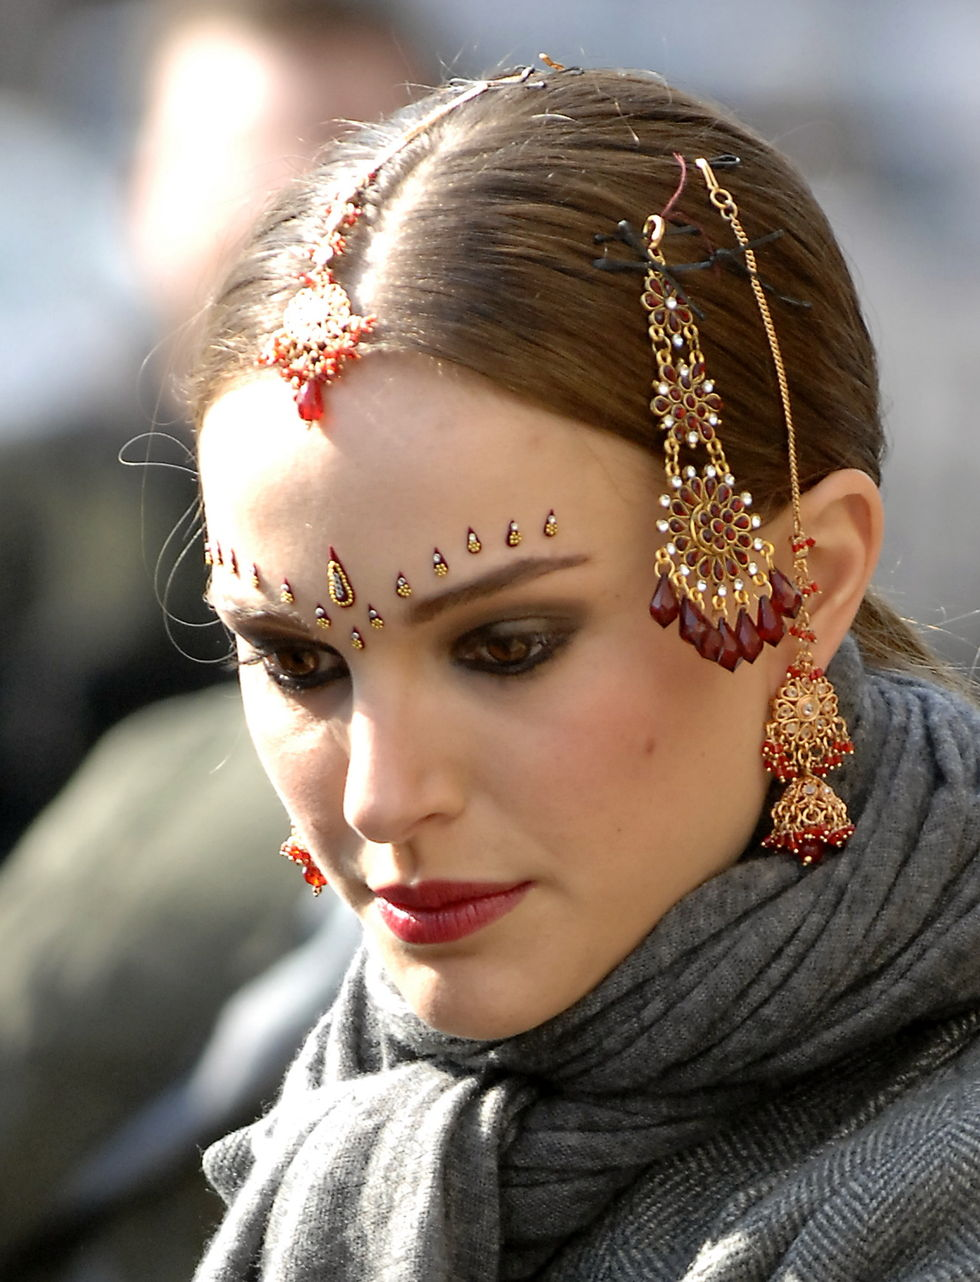 natalie-portman-on-the-set-of-new-york-i-love-you-in-brooklyn-01